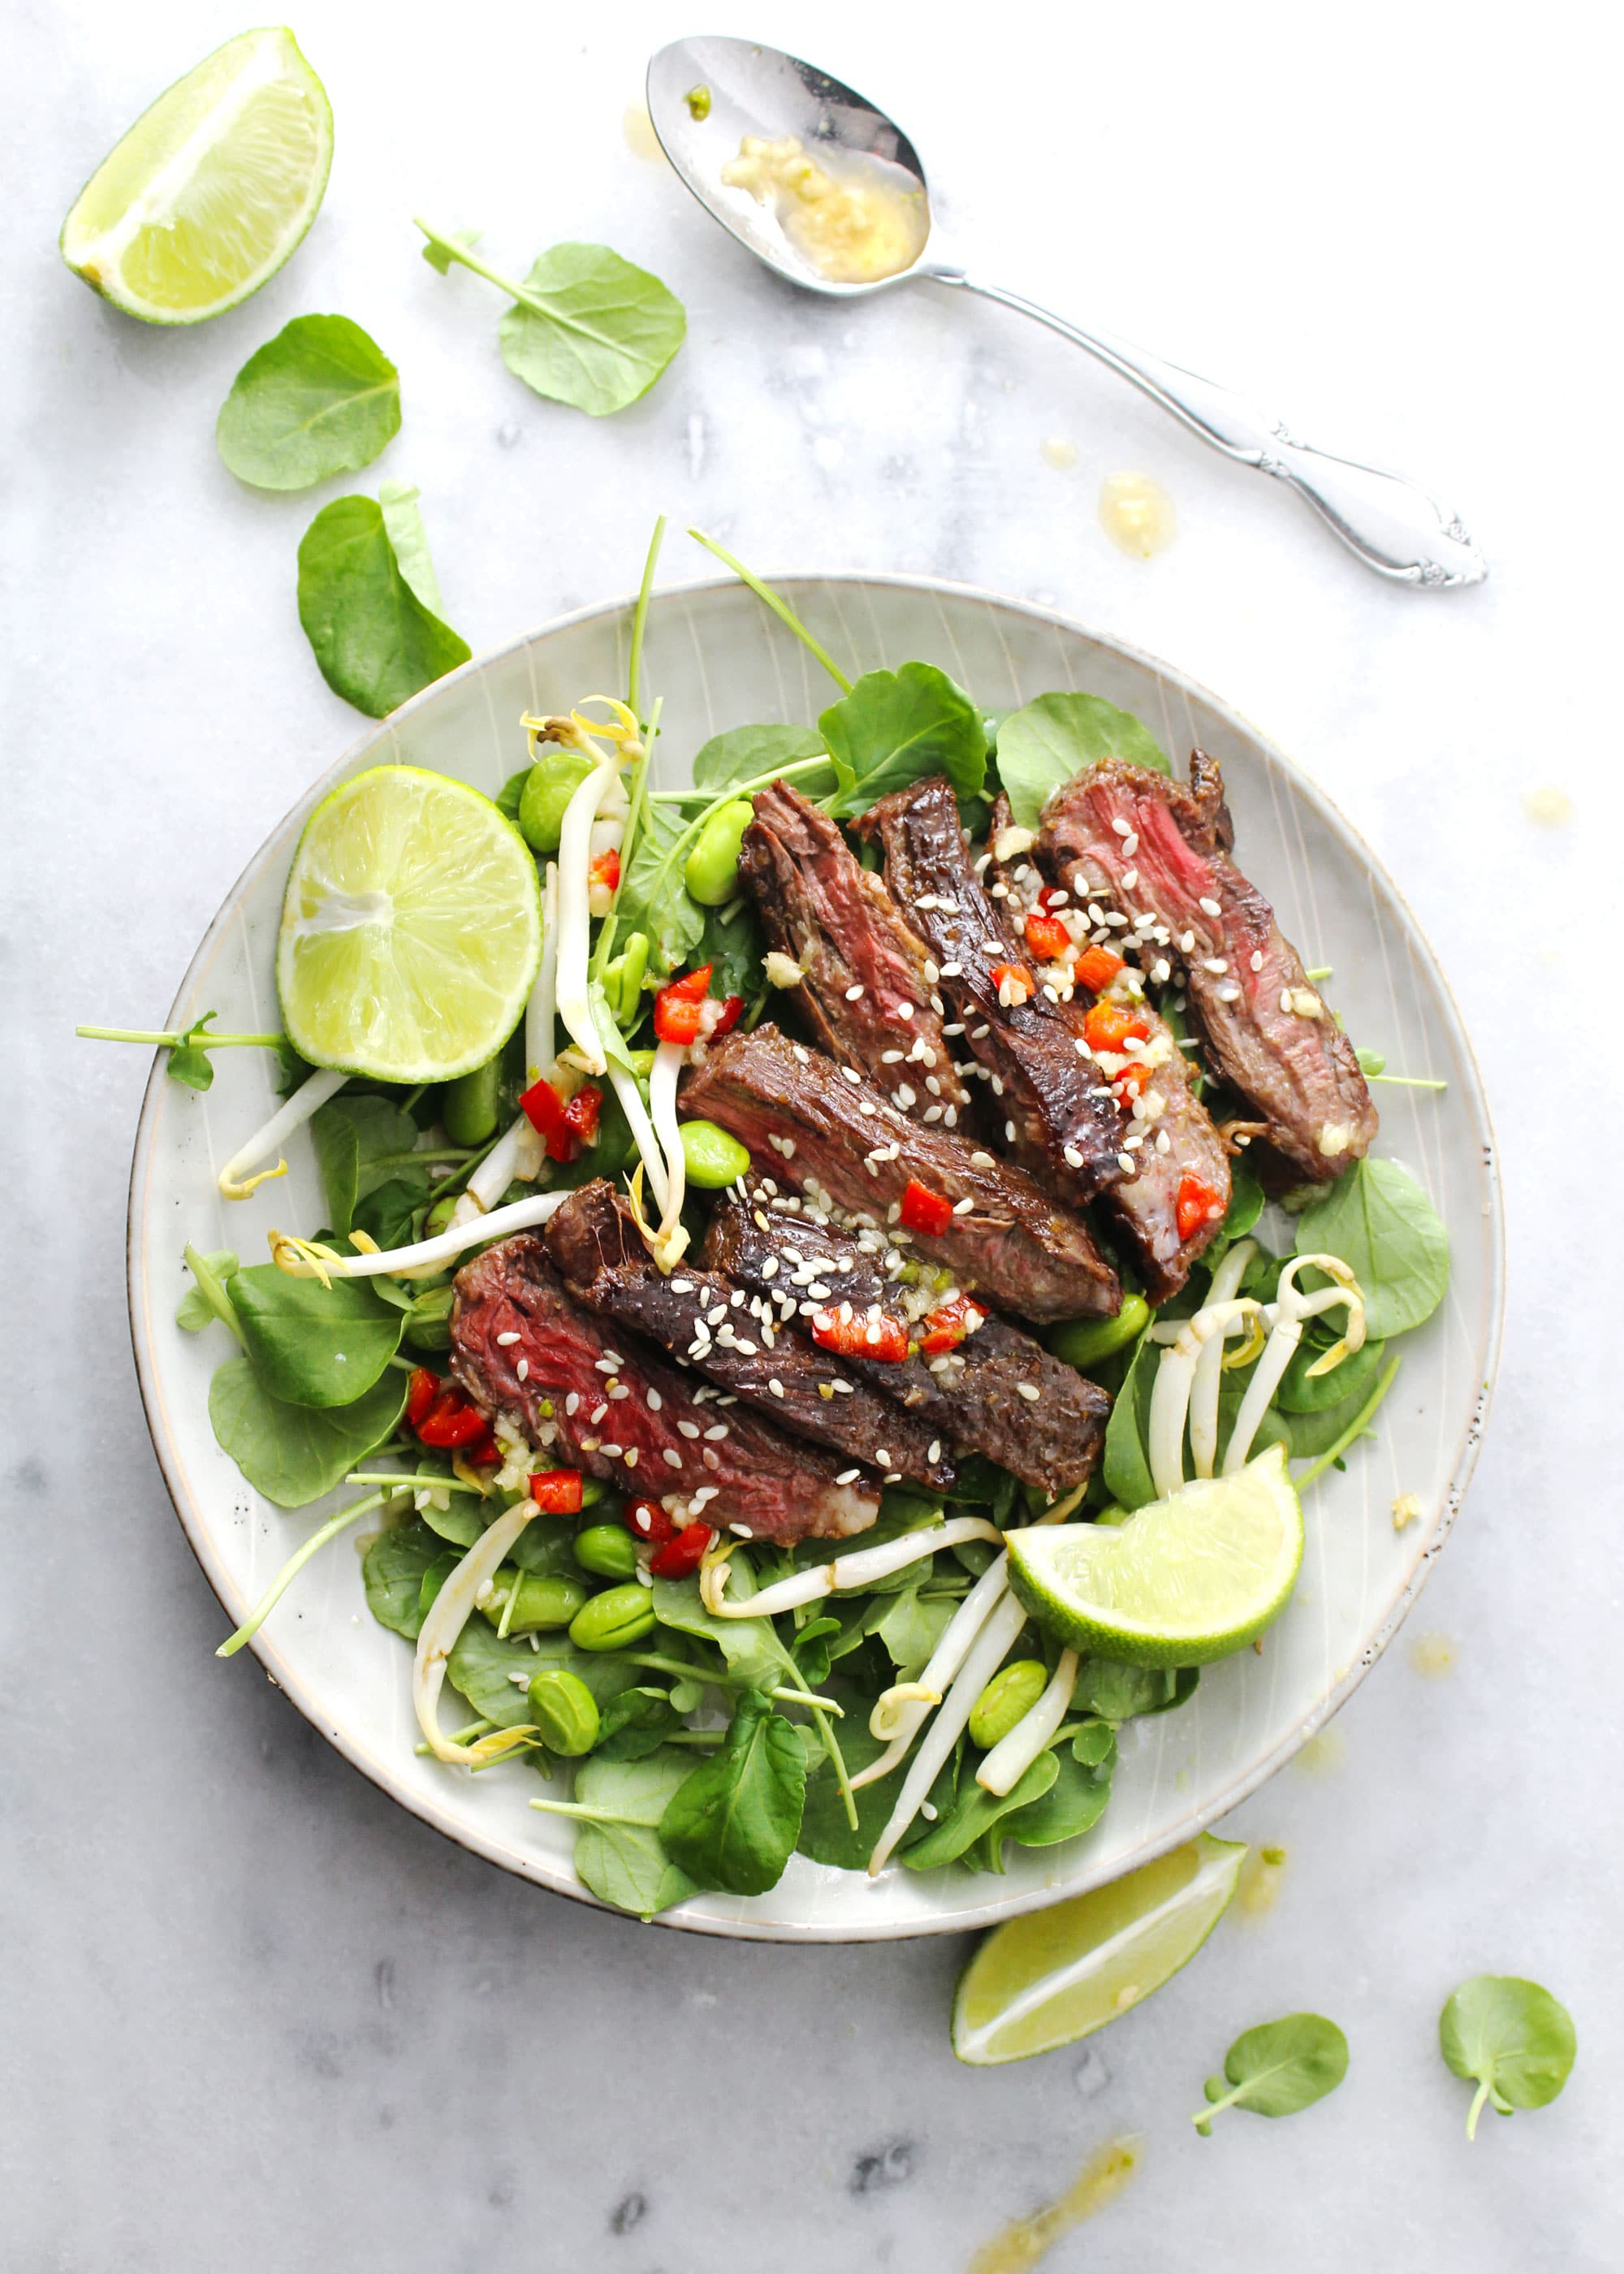 Korean BBQ steak salad with lime wedges on the side on a round plate.